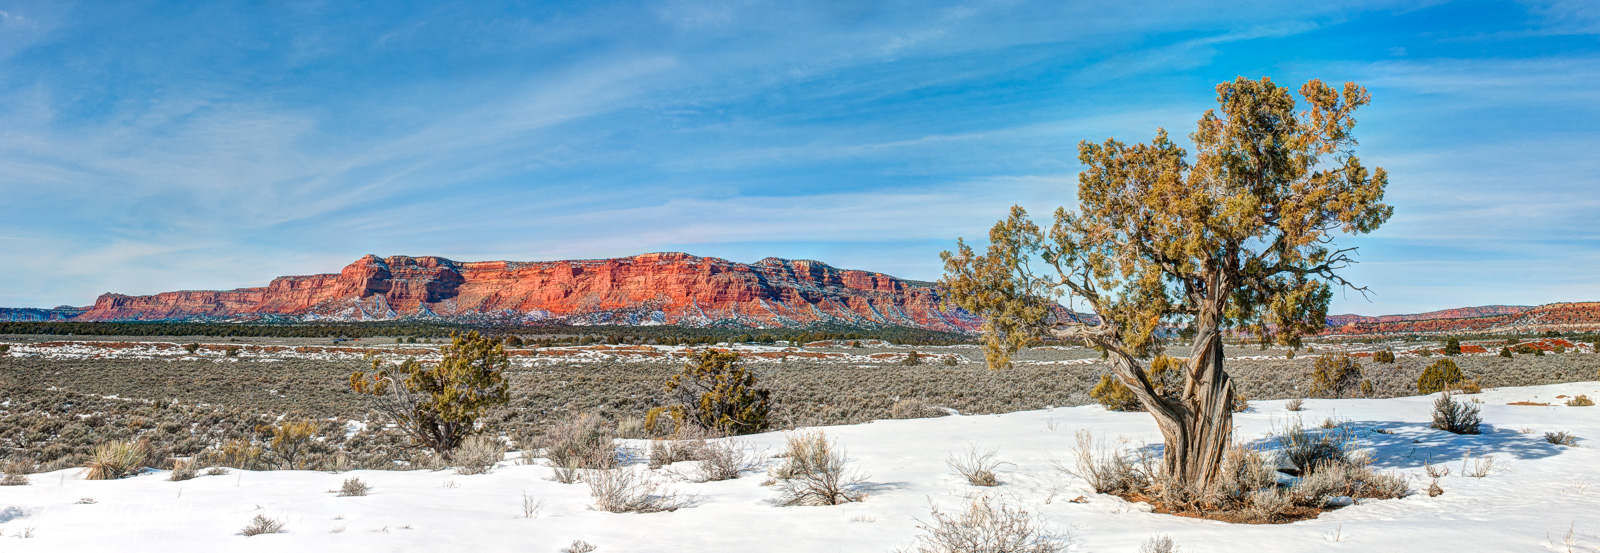 Limited Edition of 100 Museum Grade, Fine Art Prints. I was traveling to Arizona on 1/31/17 when I came across this scene east...